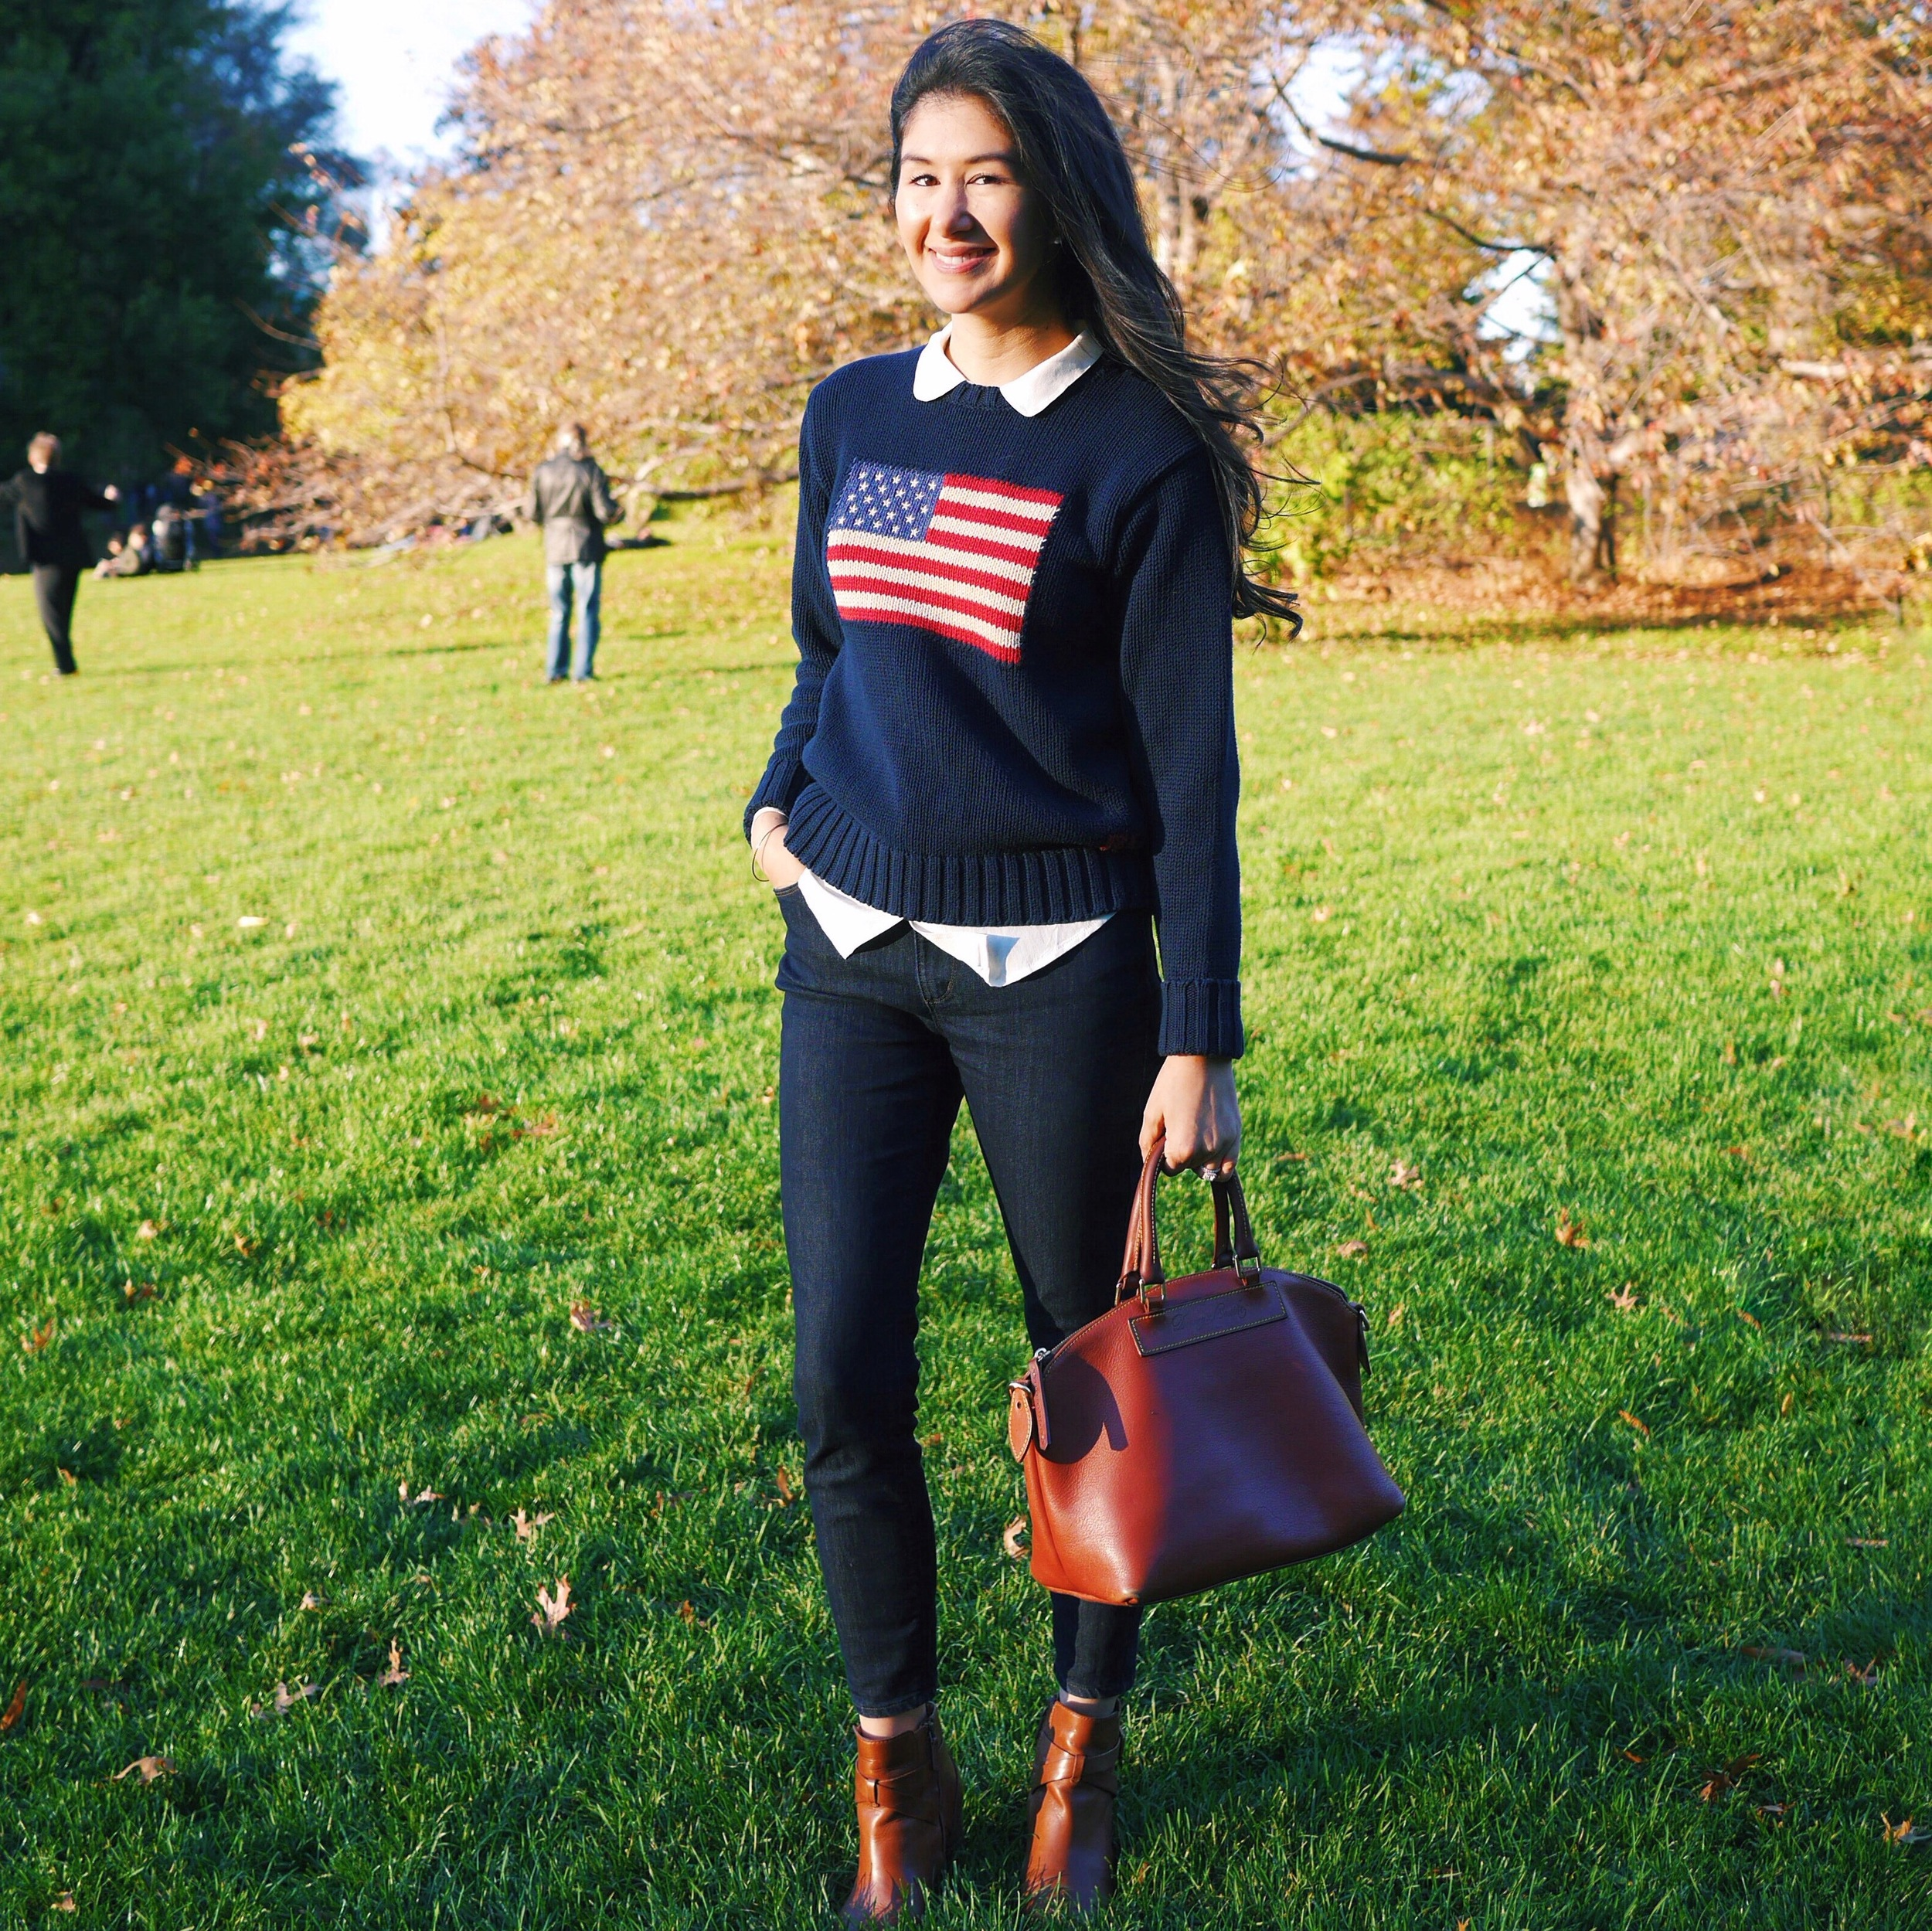 Ralph Lauren American Flag Sweater LOFT Skinny Jeans Everlane Silk Shirt Cole Haan Ankle Boots Dooney And Bourke Purse Barbour Jacket